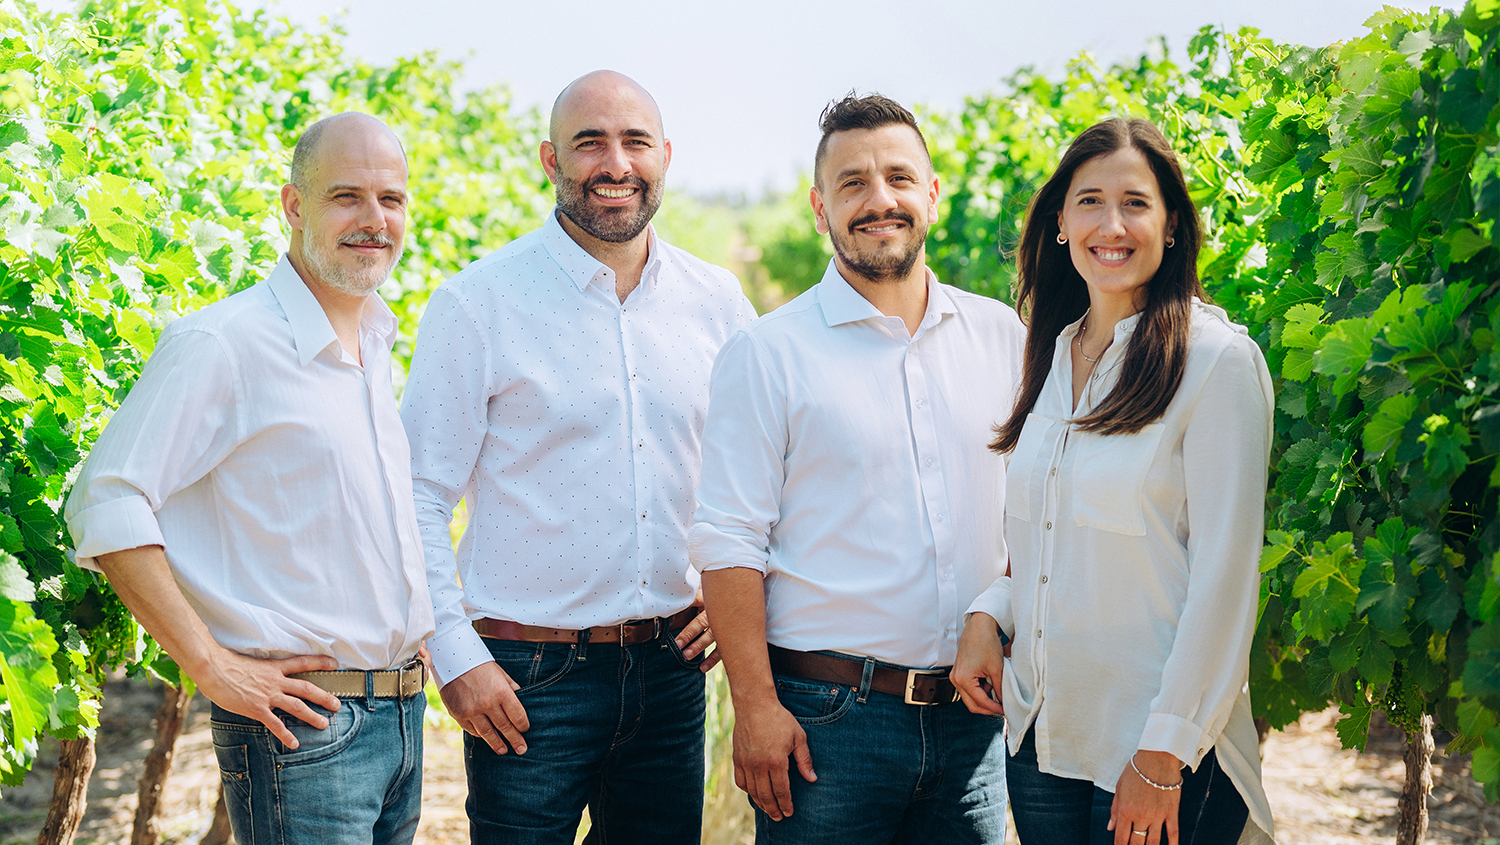 The winemaking team comes to life virtually thanks to an interactive virtual tour that now includes a stop in the vineyards, to toast and learn alongside Rafael Miranda, Germán Di Cesare, Maximiliano Ortiz, and Magdalena Viani.